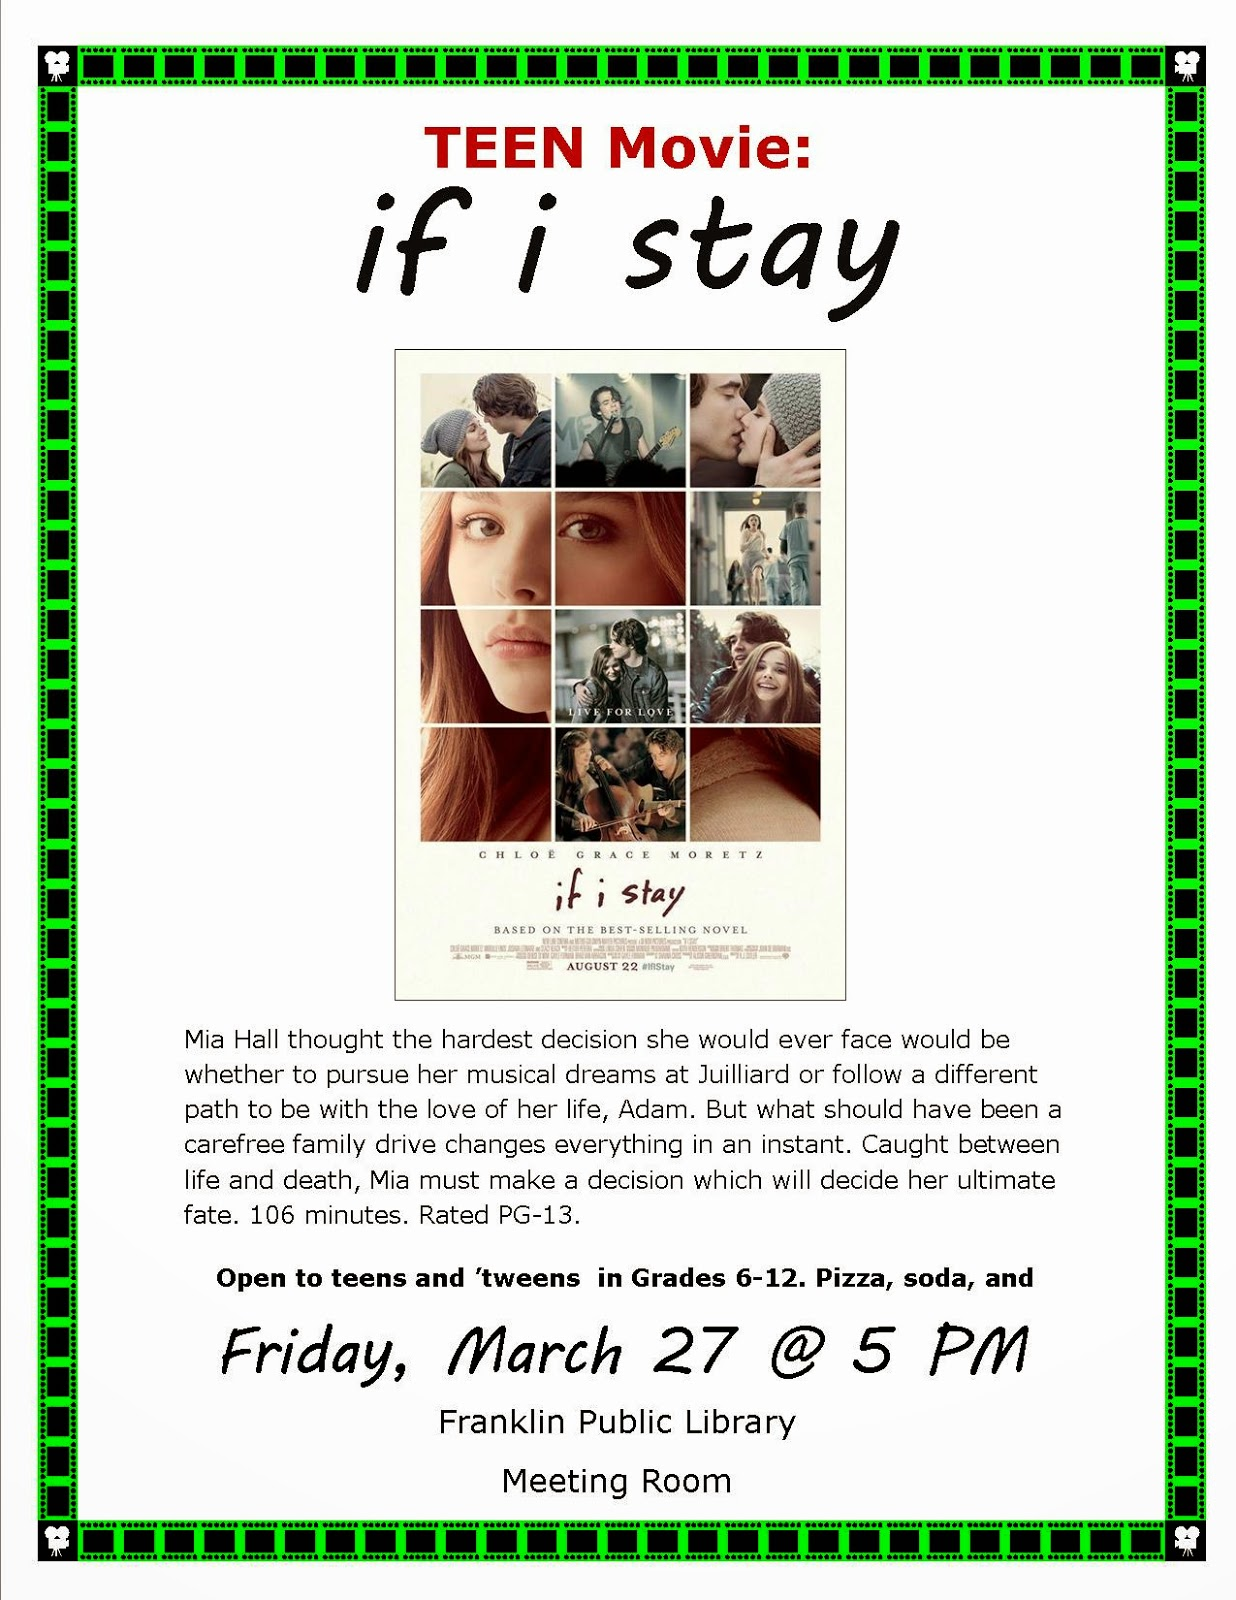 If I Stay - Teen movie at 5:00 PM Fri 3/27